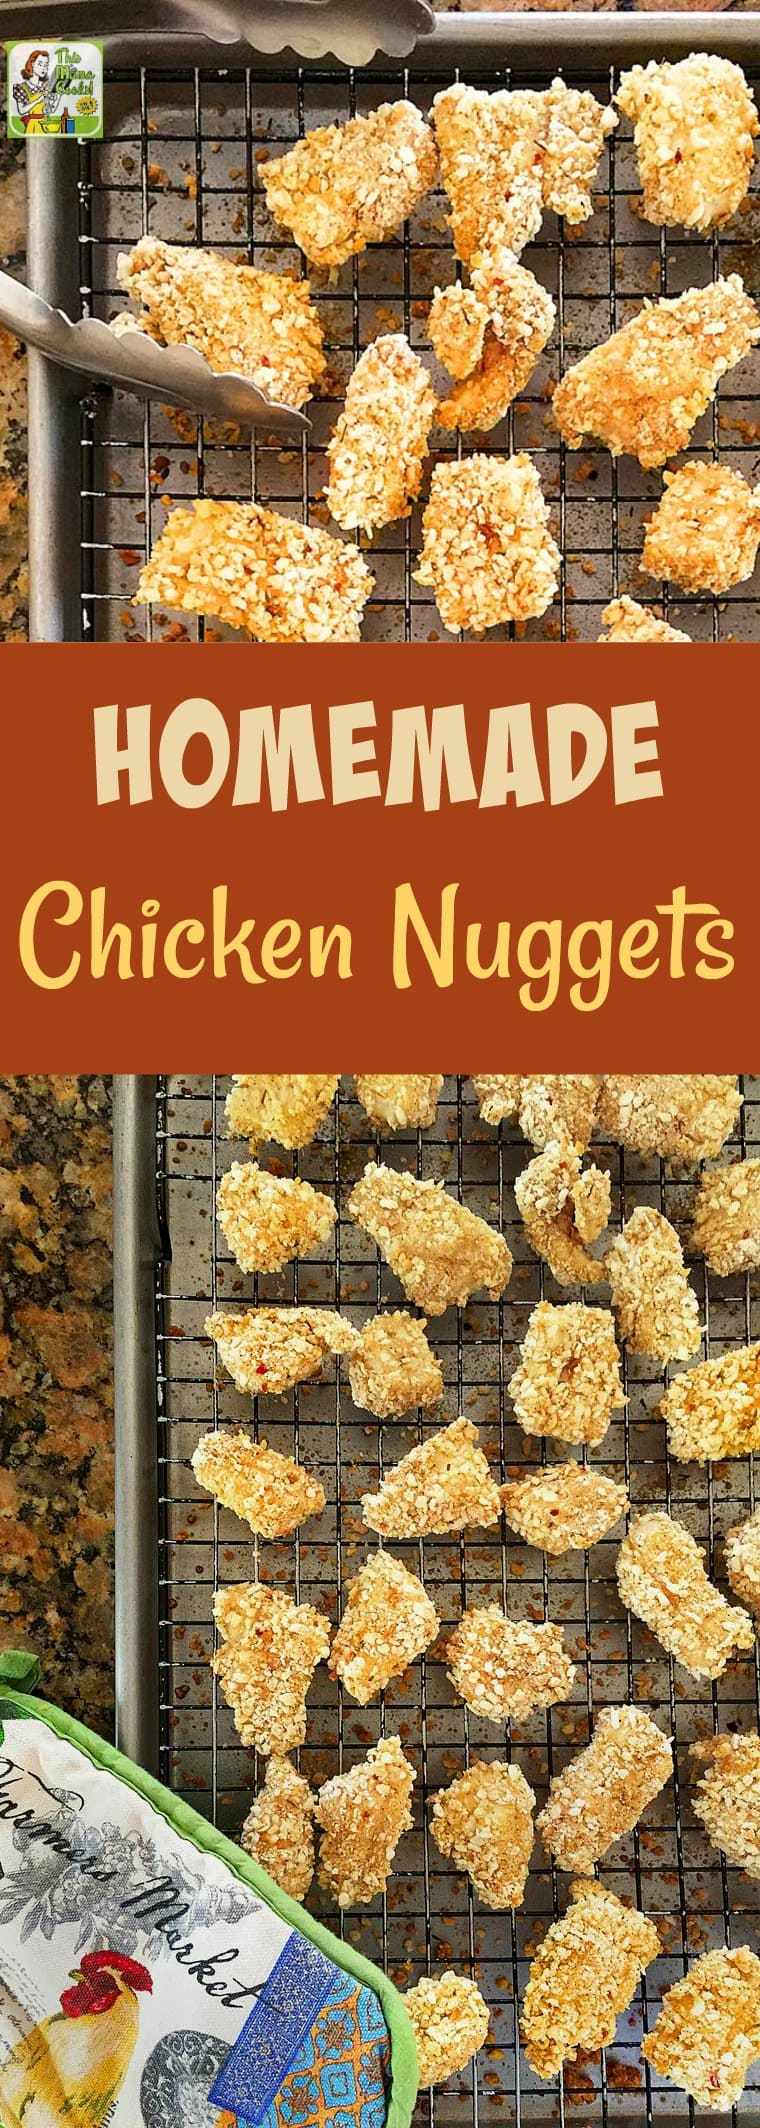 Homemade Chicken Nuggets make easy-to-serve appetizers. This chicken nuggets recipe is gluten-free and kids will love them served with dipping sauce! Make this chicken nugget recipe as a kids' meal or party appetizer. #recipe #glutenfree #chicken #chickennuggets #kidfriendly #kidfood #appetizer #kidsmeals #appetizers